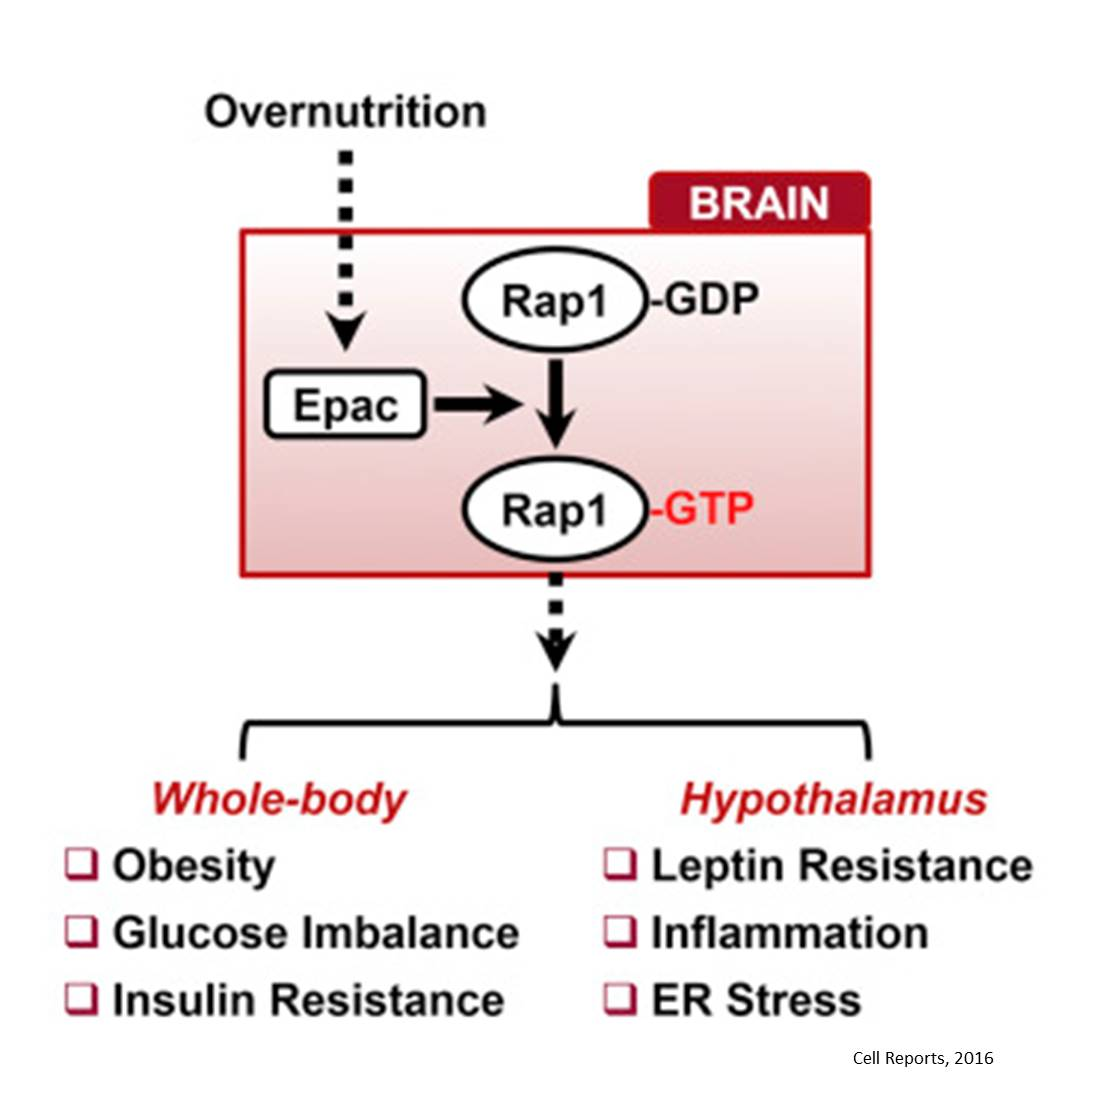 Small GTPase role in brain metabolism